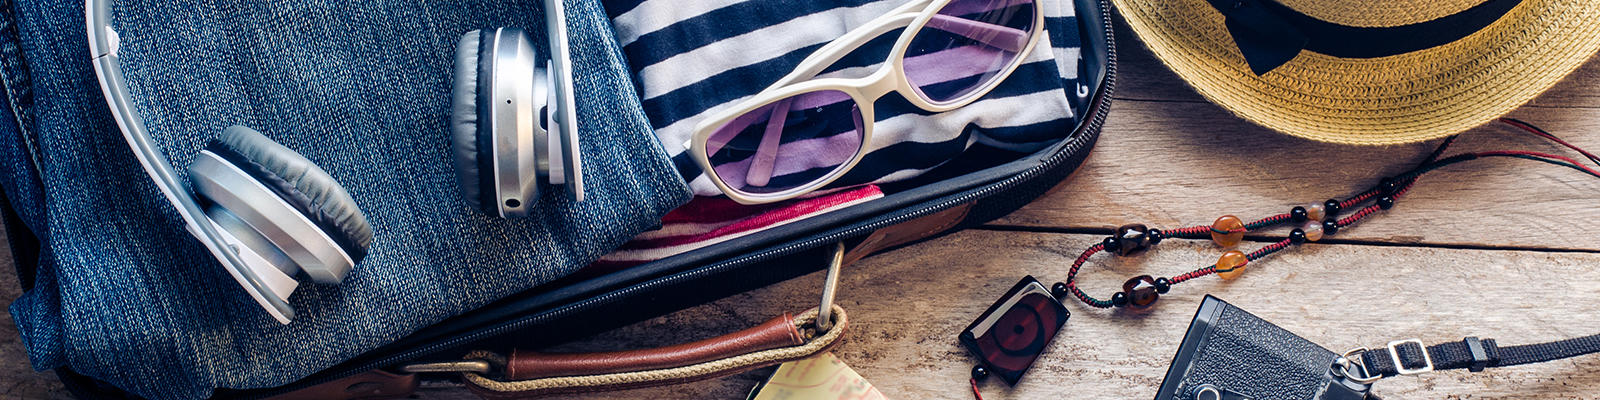 5 tips for packing smartly and travelling safely